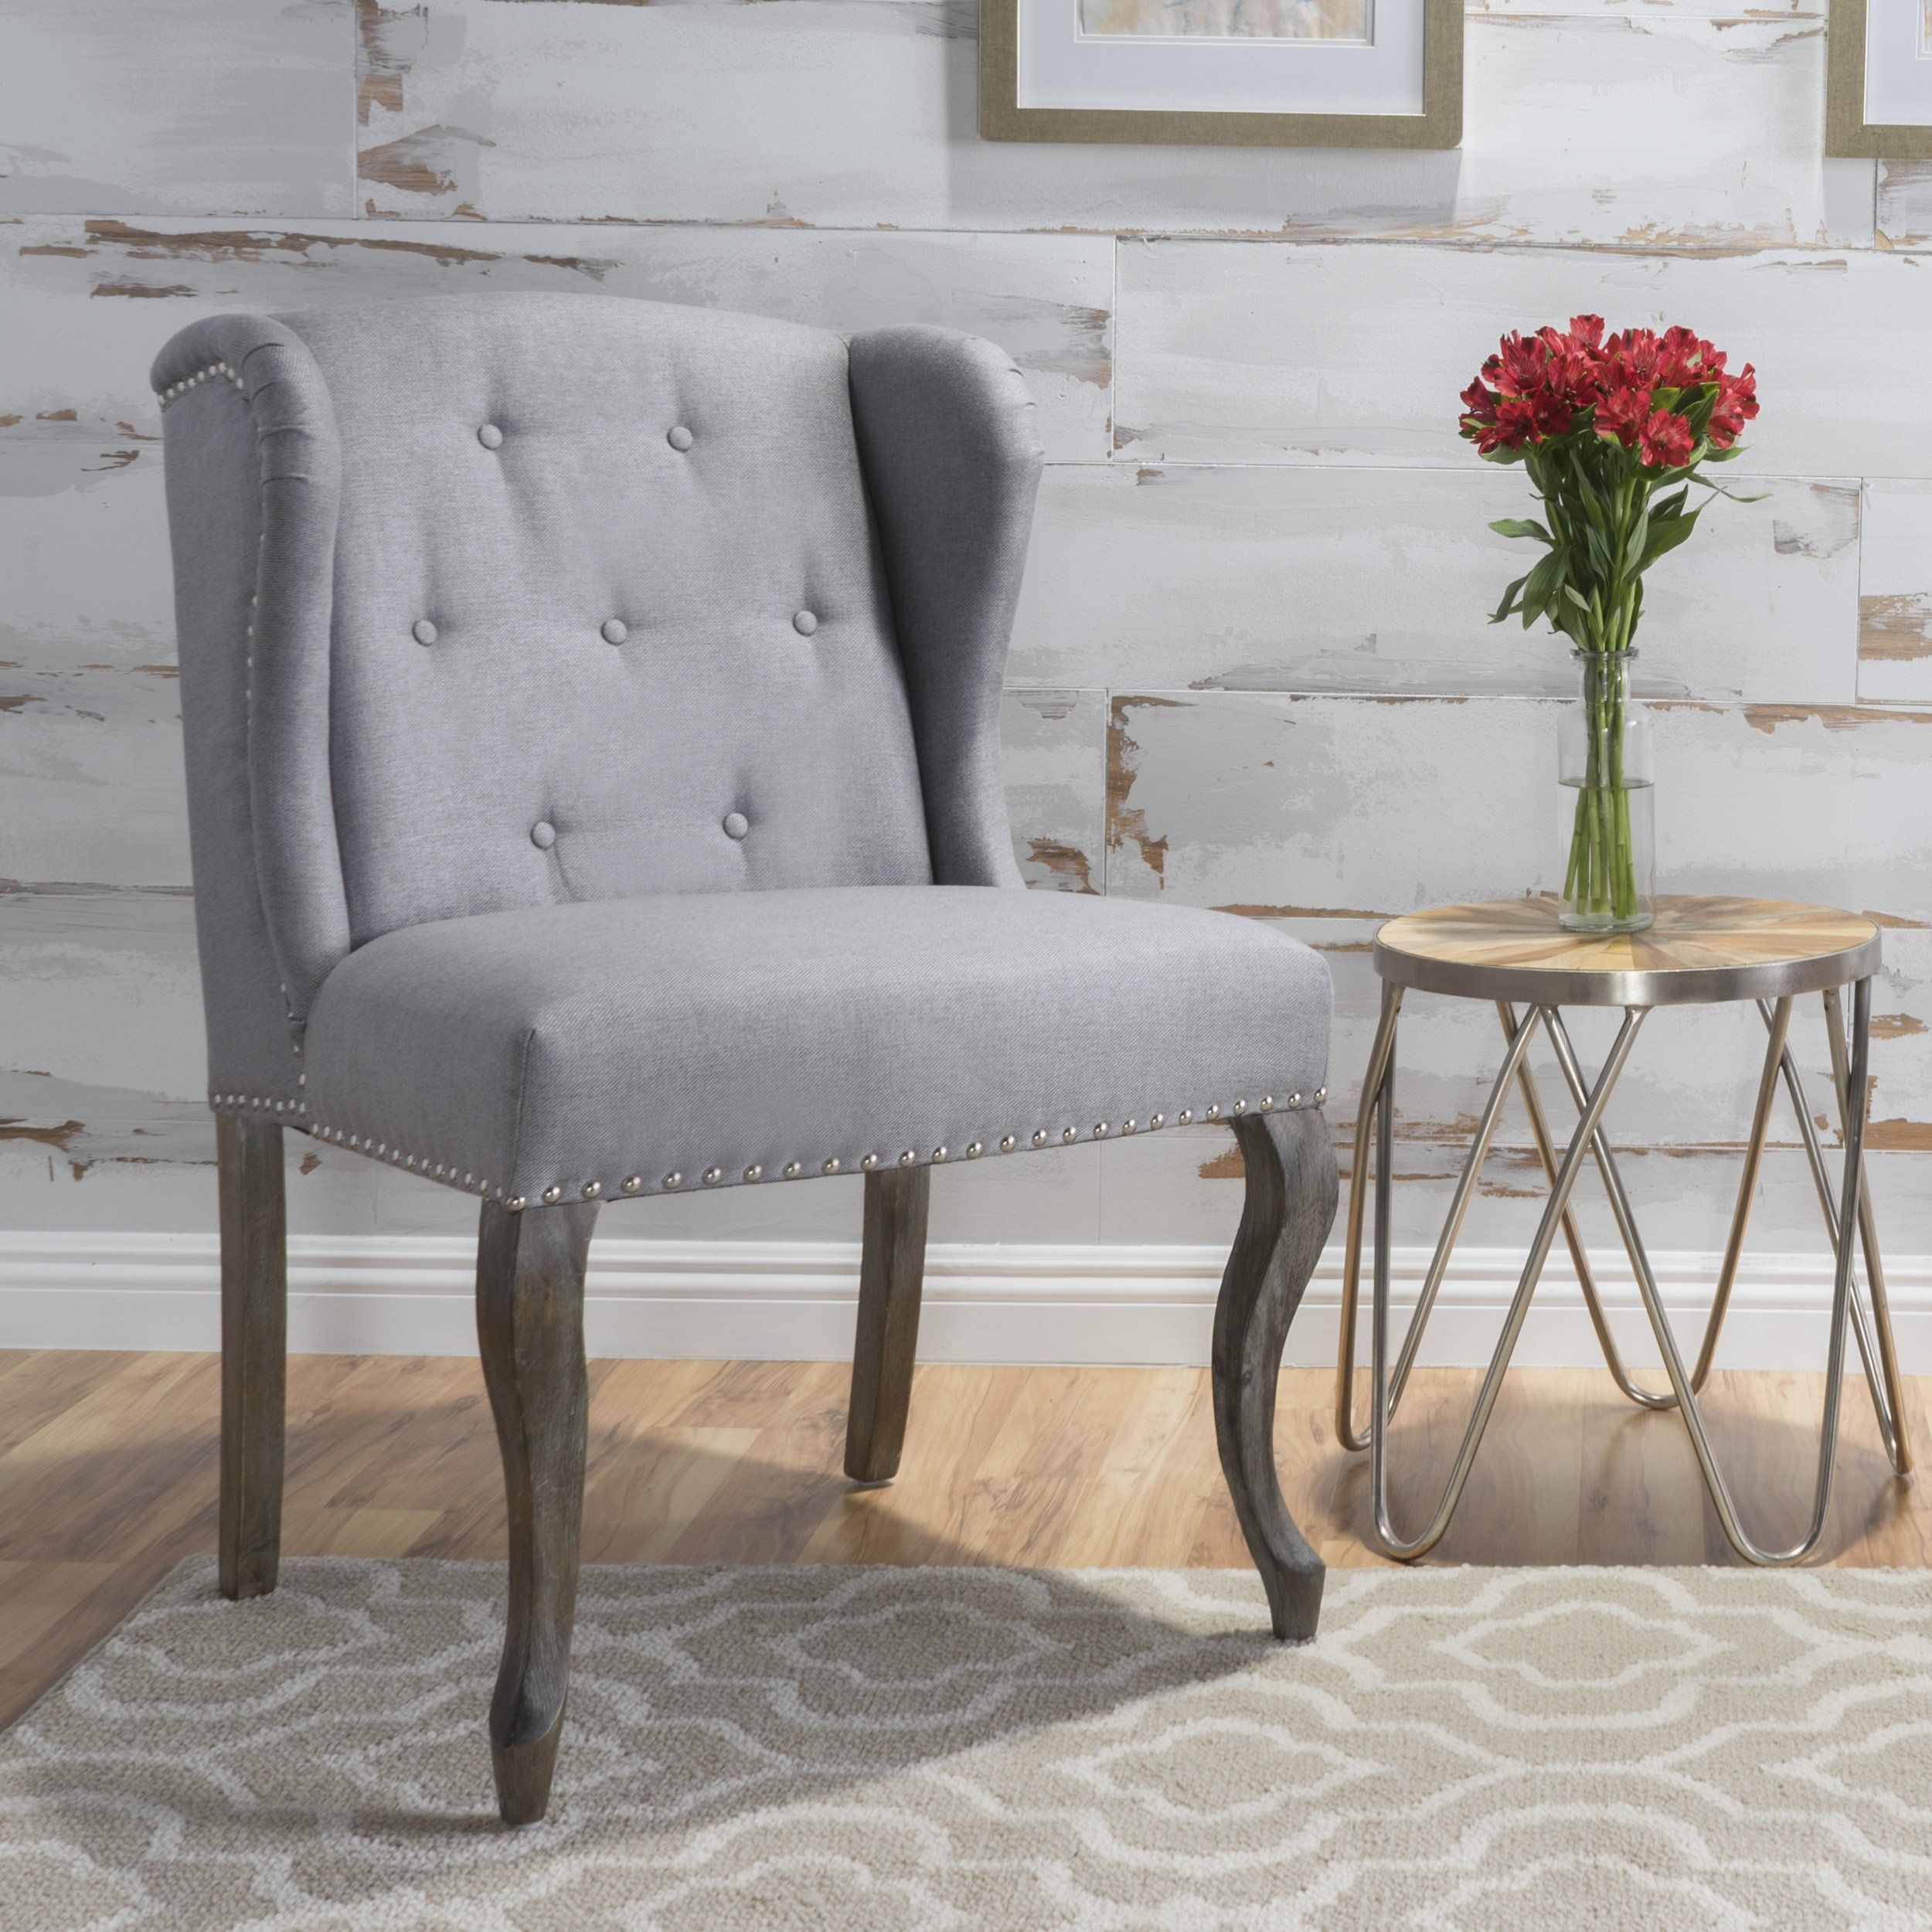 Christopher Knight Home 299858 Asheville Button Tufted Fabric Chair (Light Grey) by Christopher Knight Home